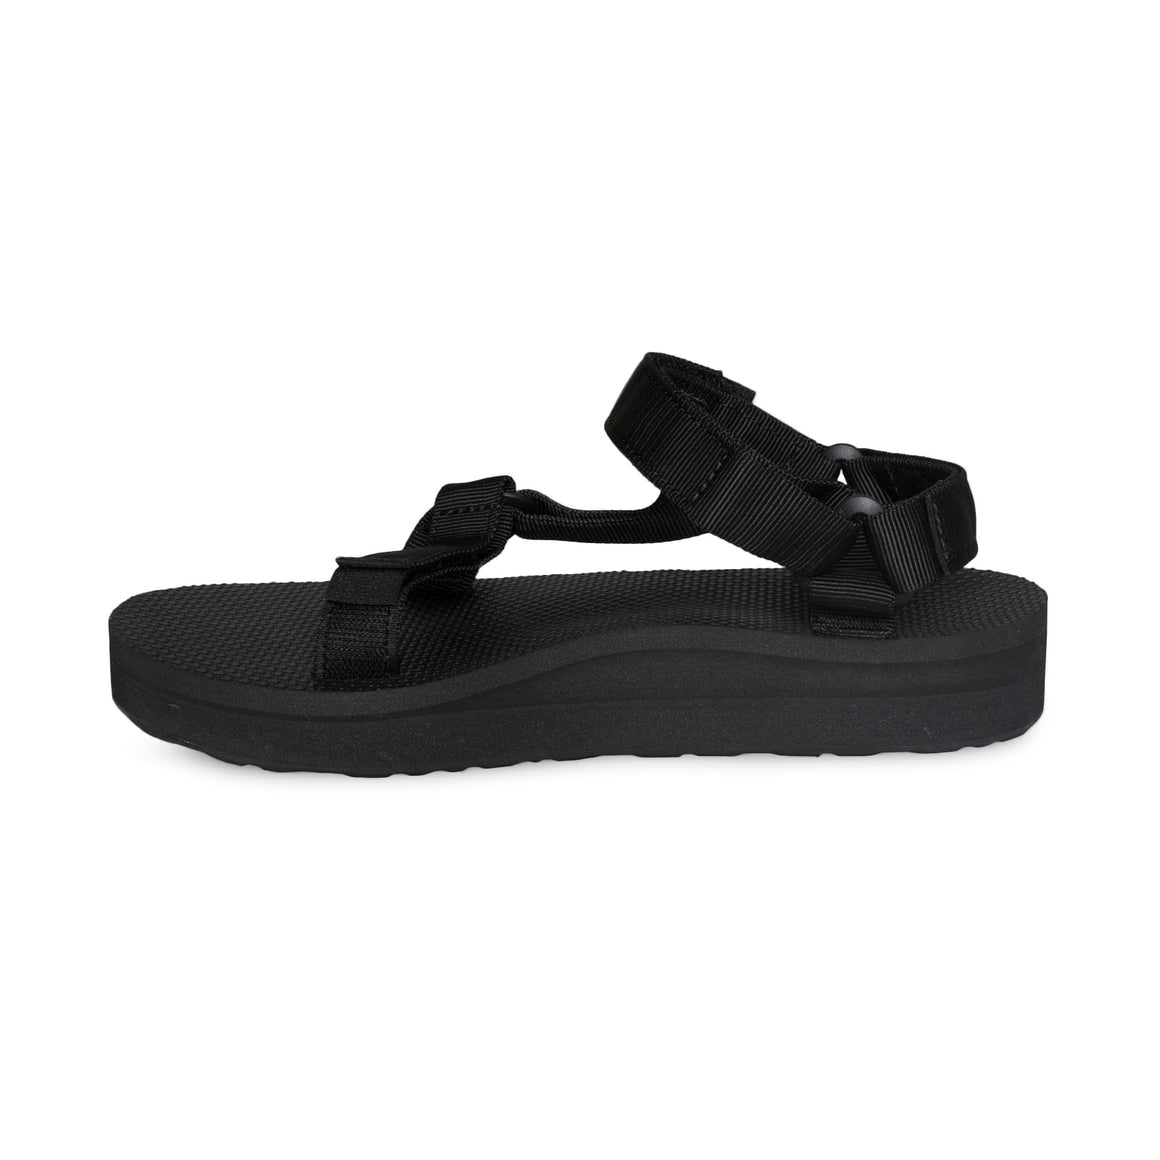 Teva Midform Universal Black Sandals - Women's